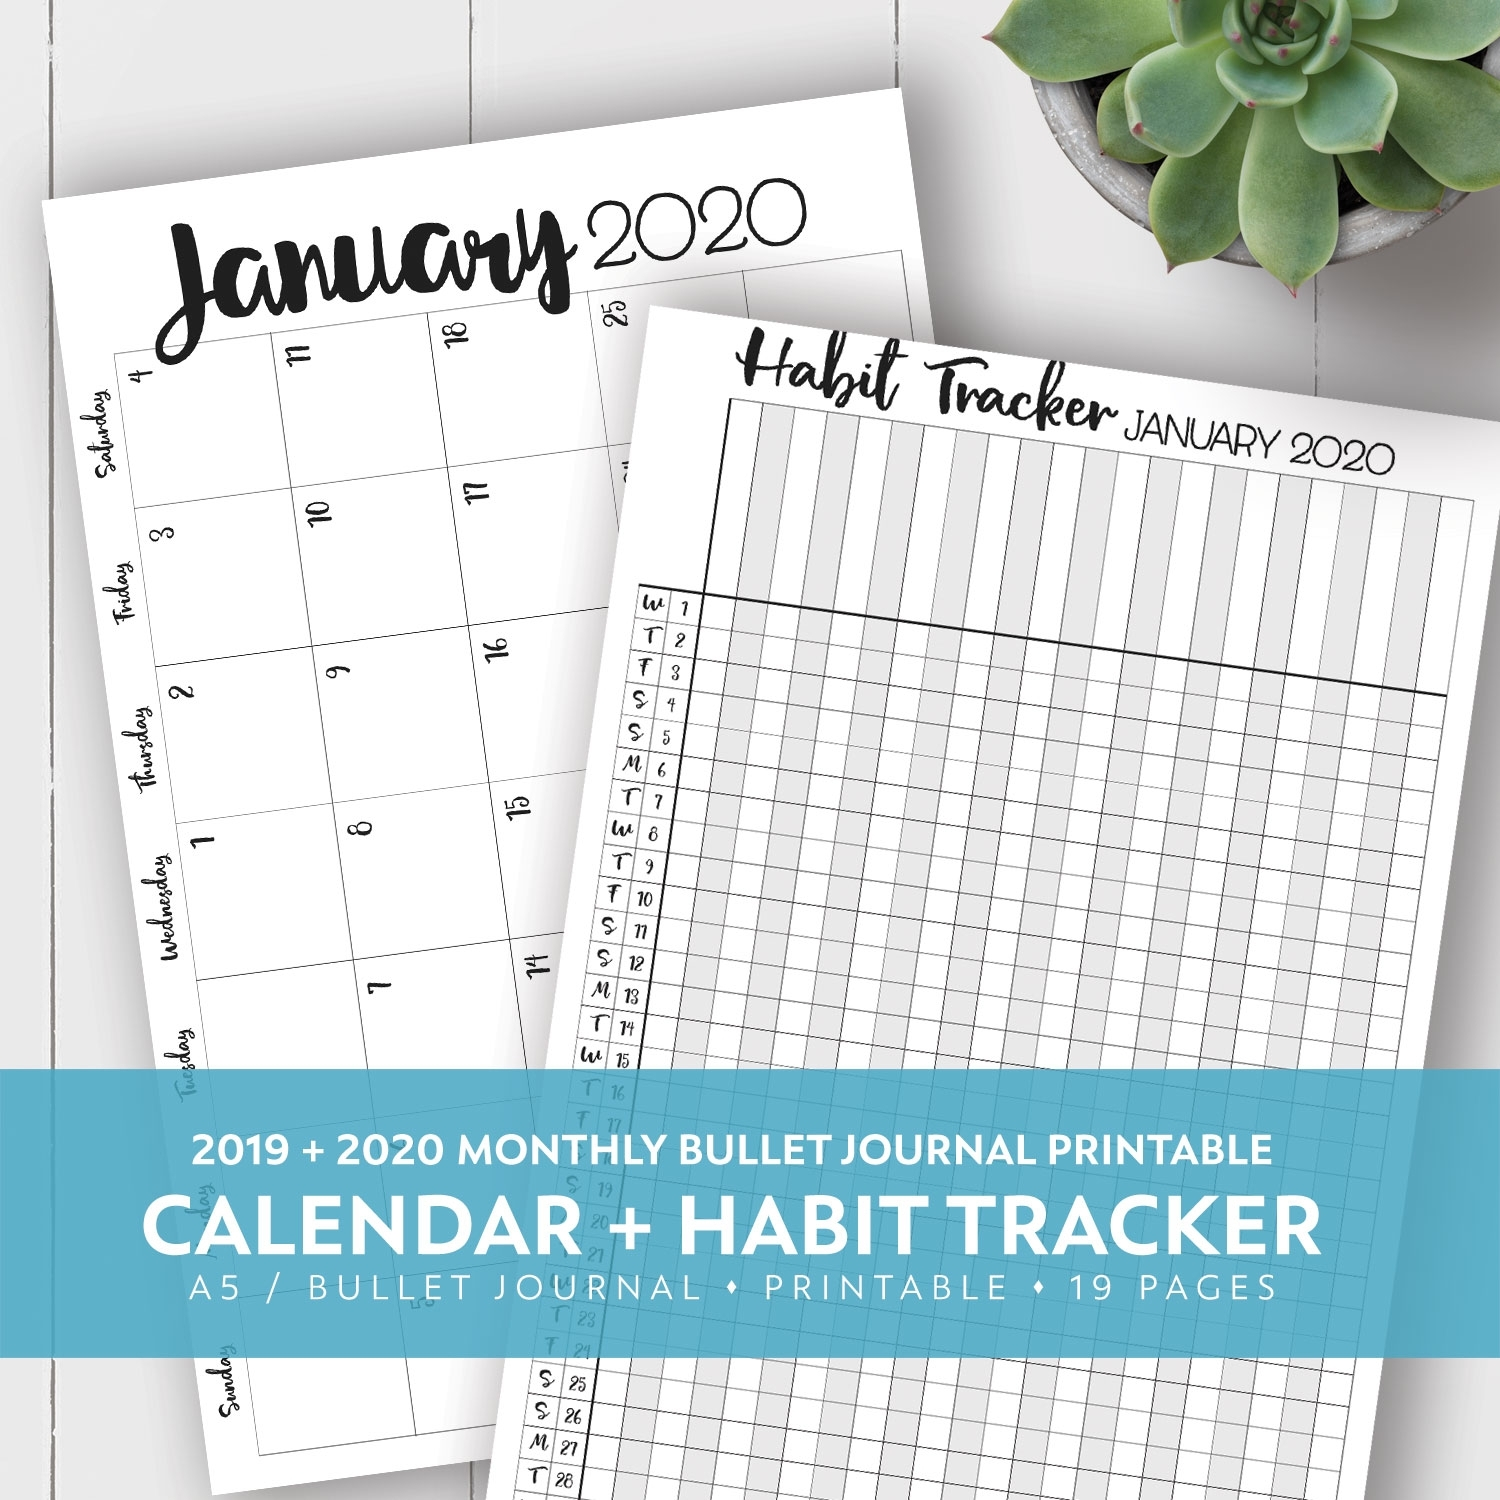 2019 + 2020 Monthly Printable Calendar + Habit Tracker Kit | Laura intended for Free Yearly 5.5 X 8.5 Calendar 2020